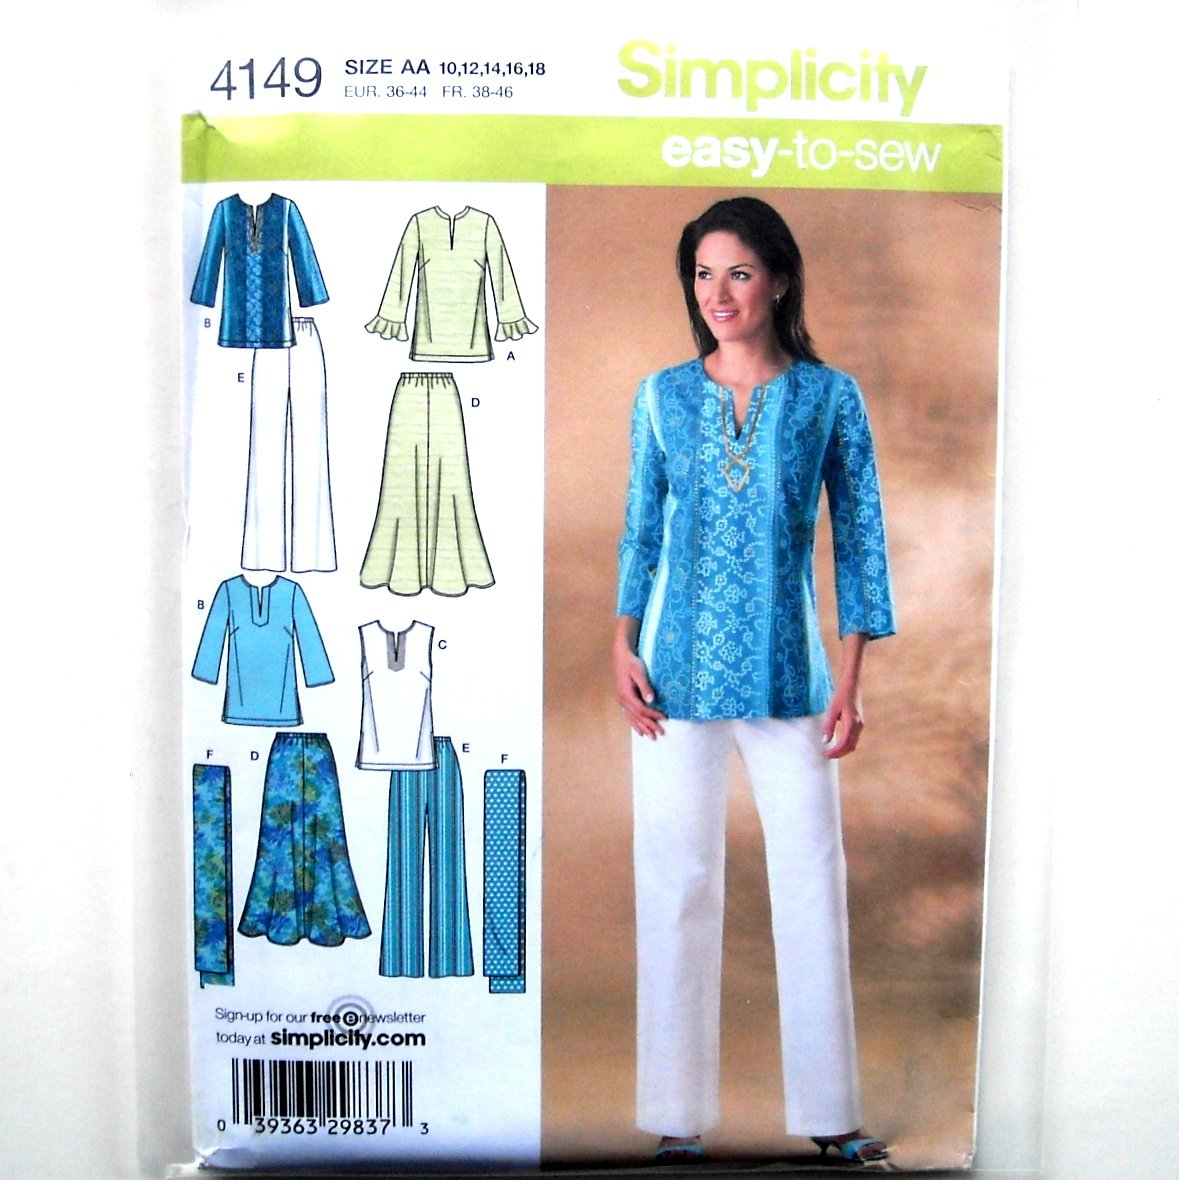 Summer Skirts Pants Tunic Scarf Easy To Sew Simplicity Pattern 4149